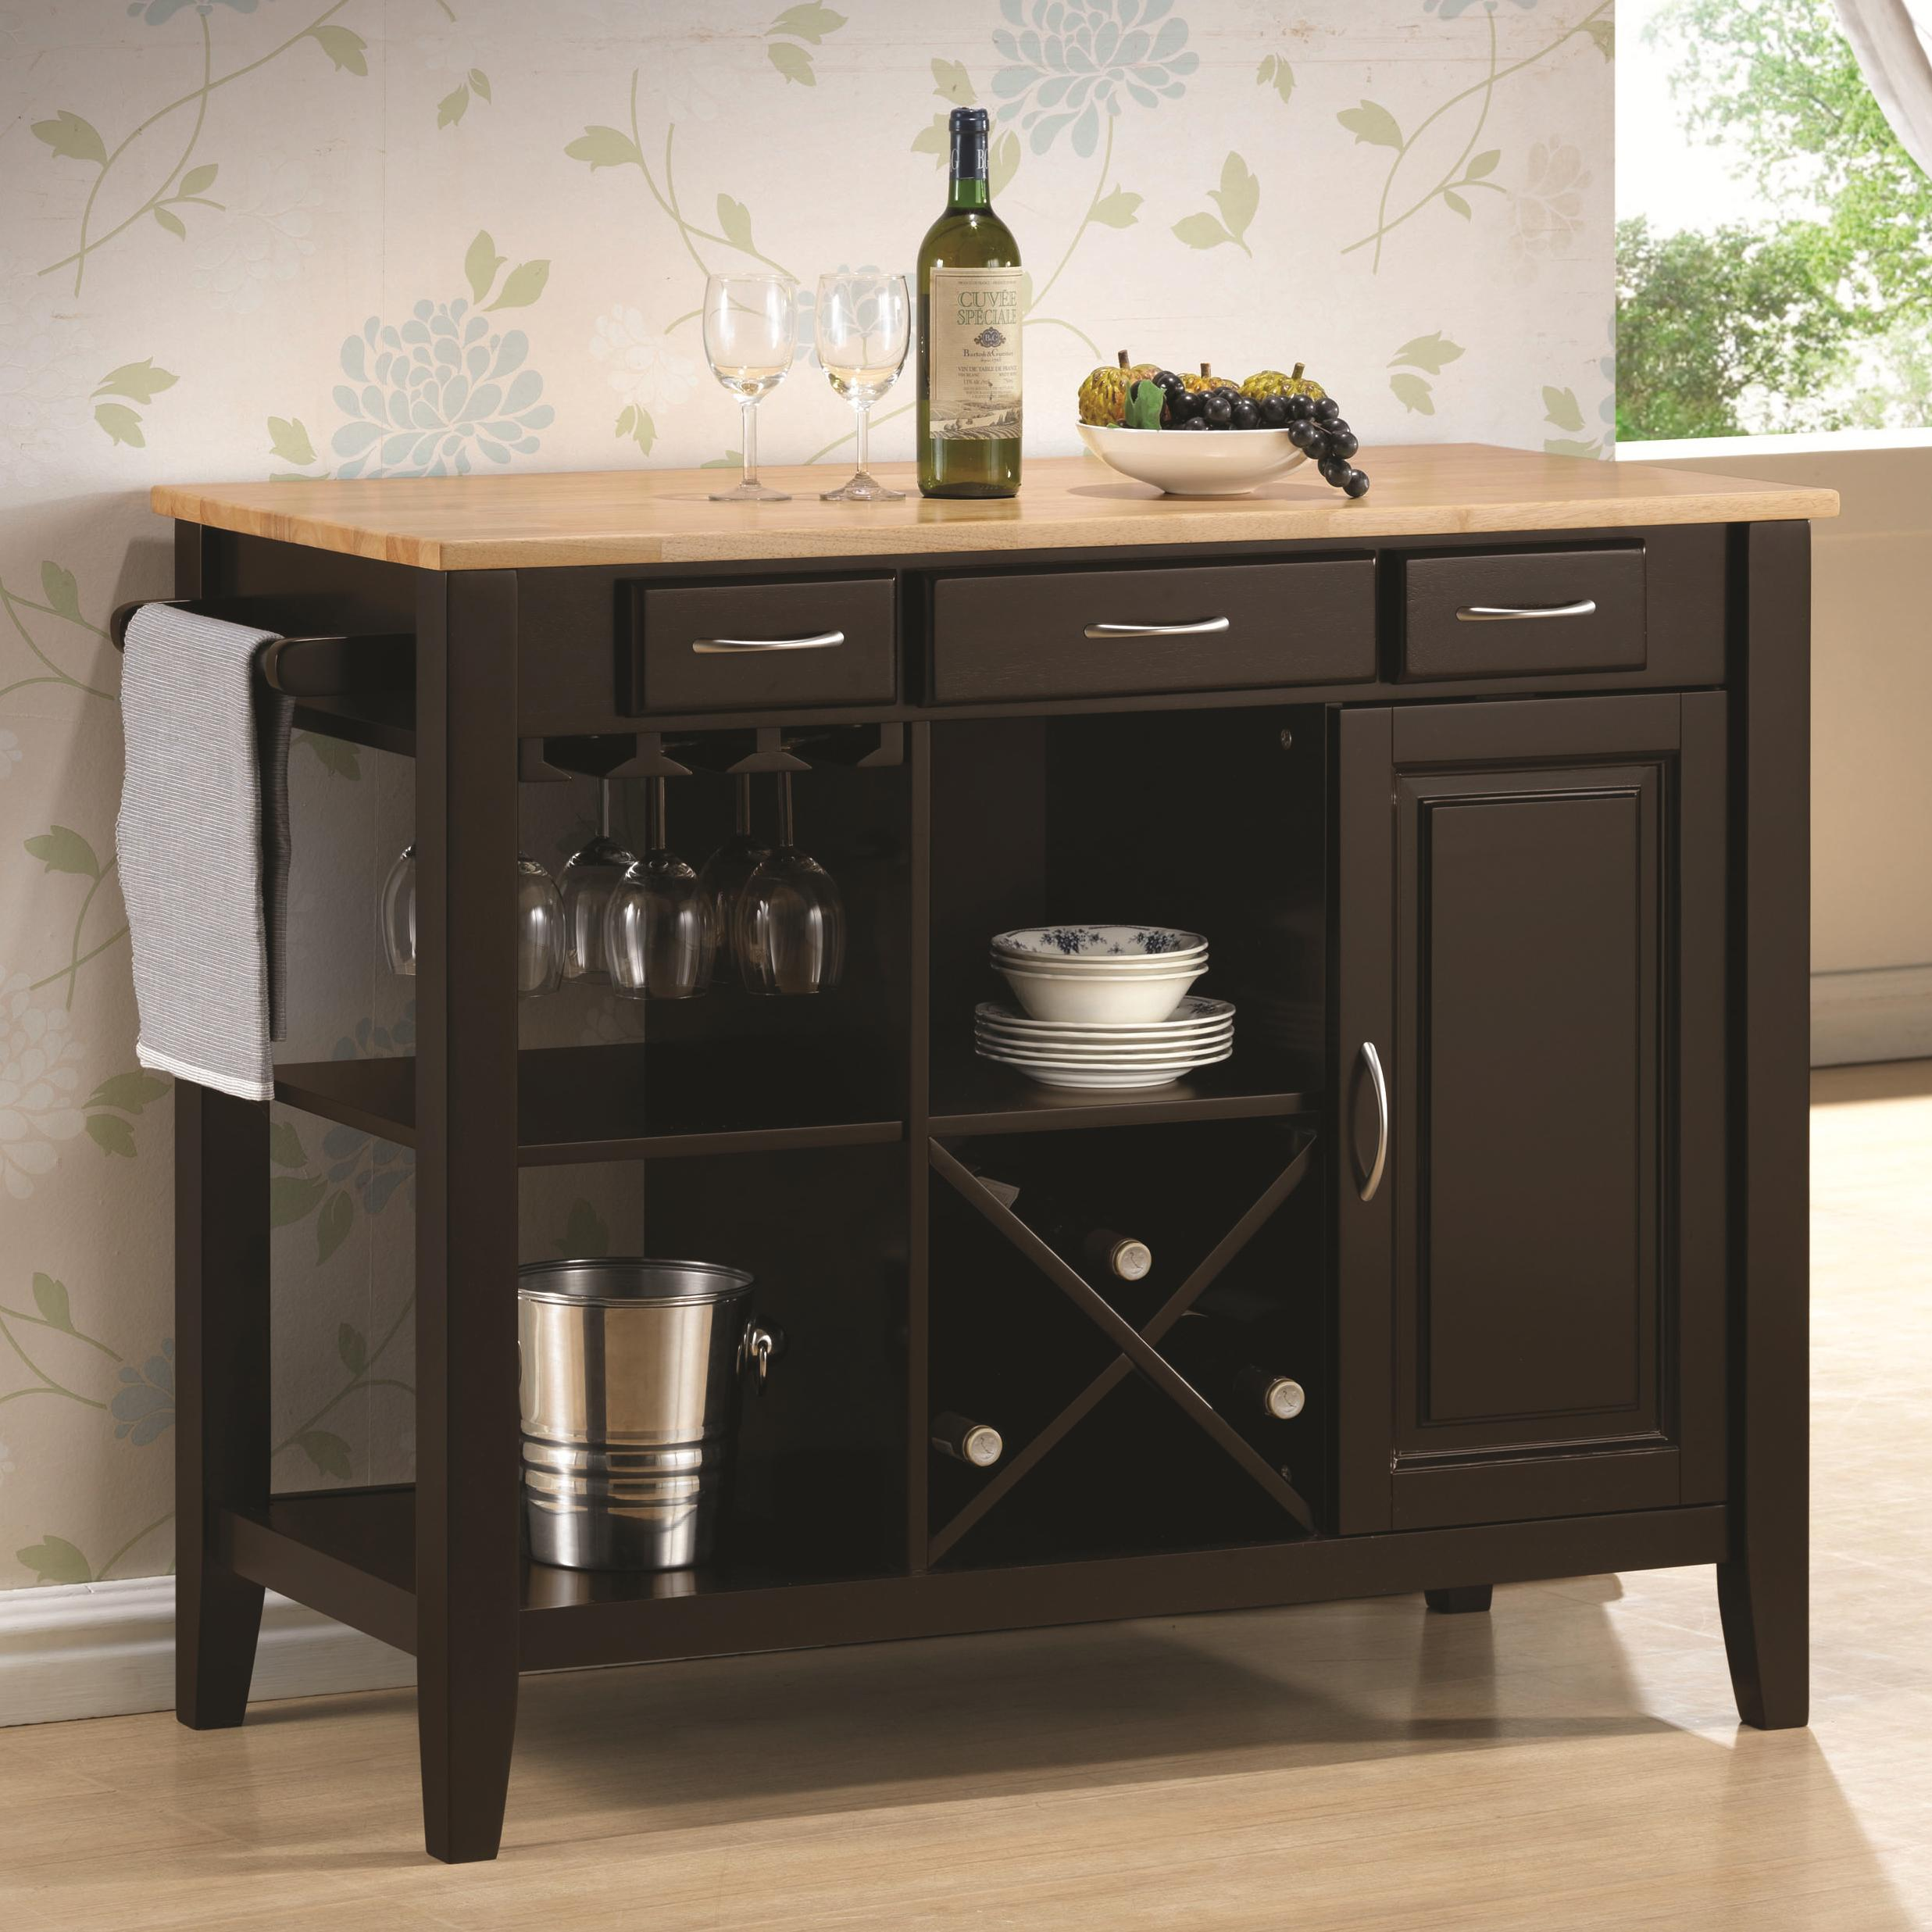 Coaster Kitchen Carts Kitchen Cart   Item Number: 910028